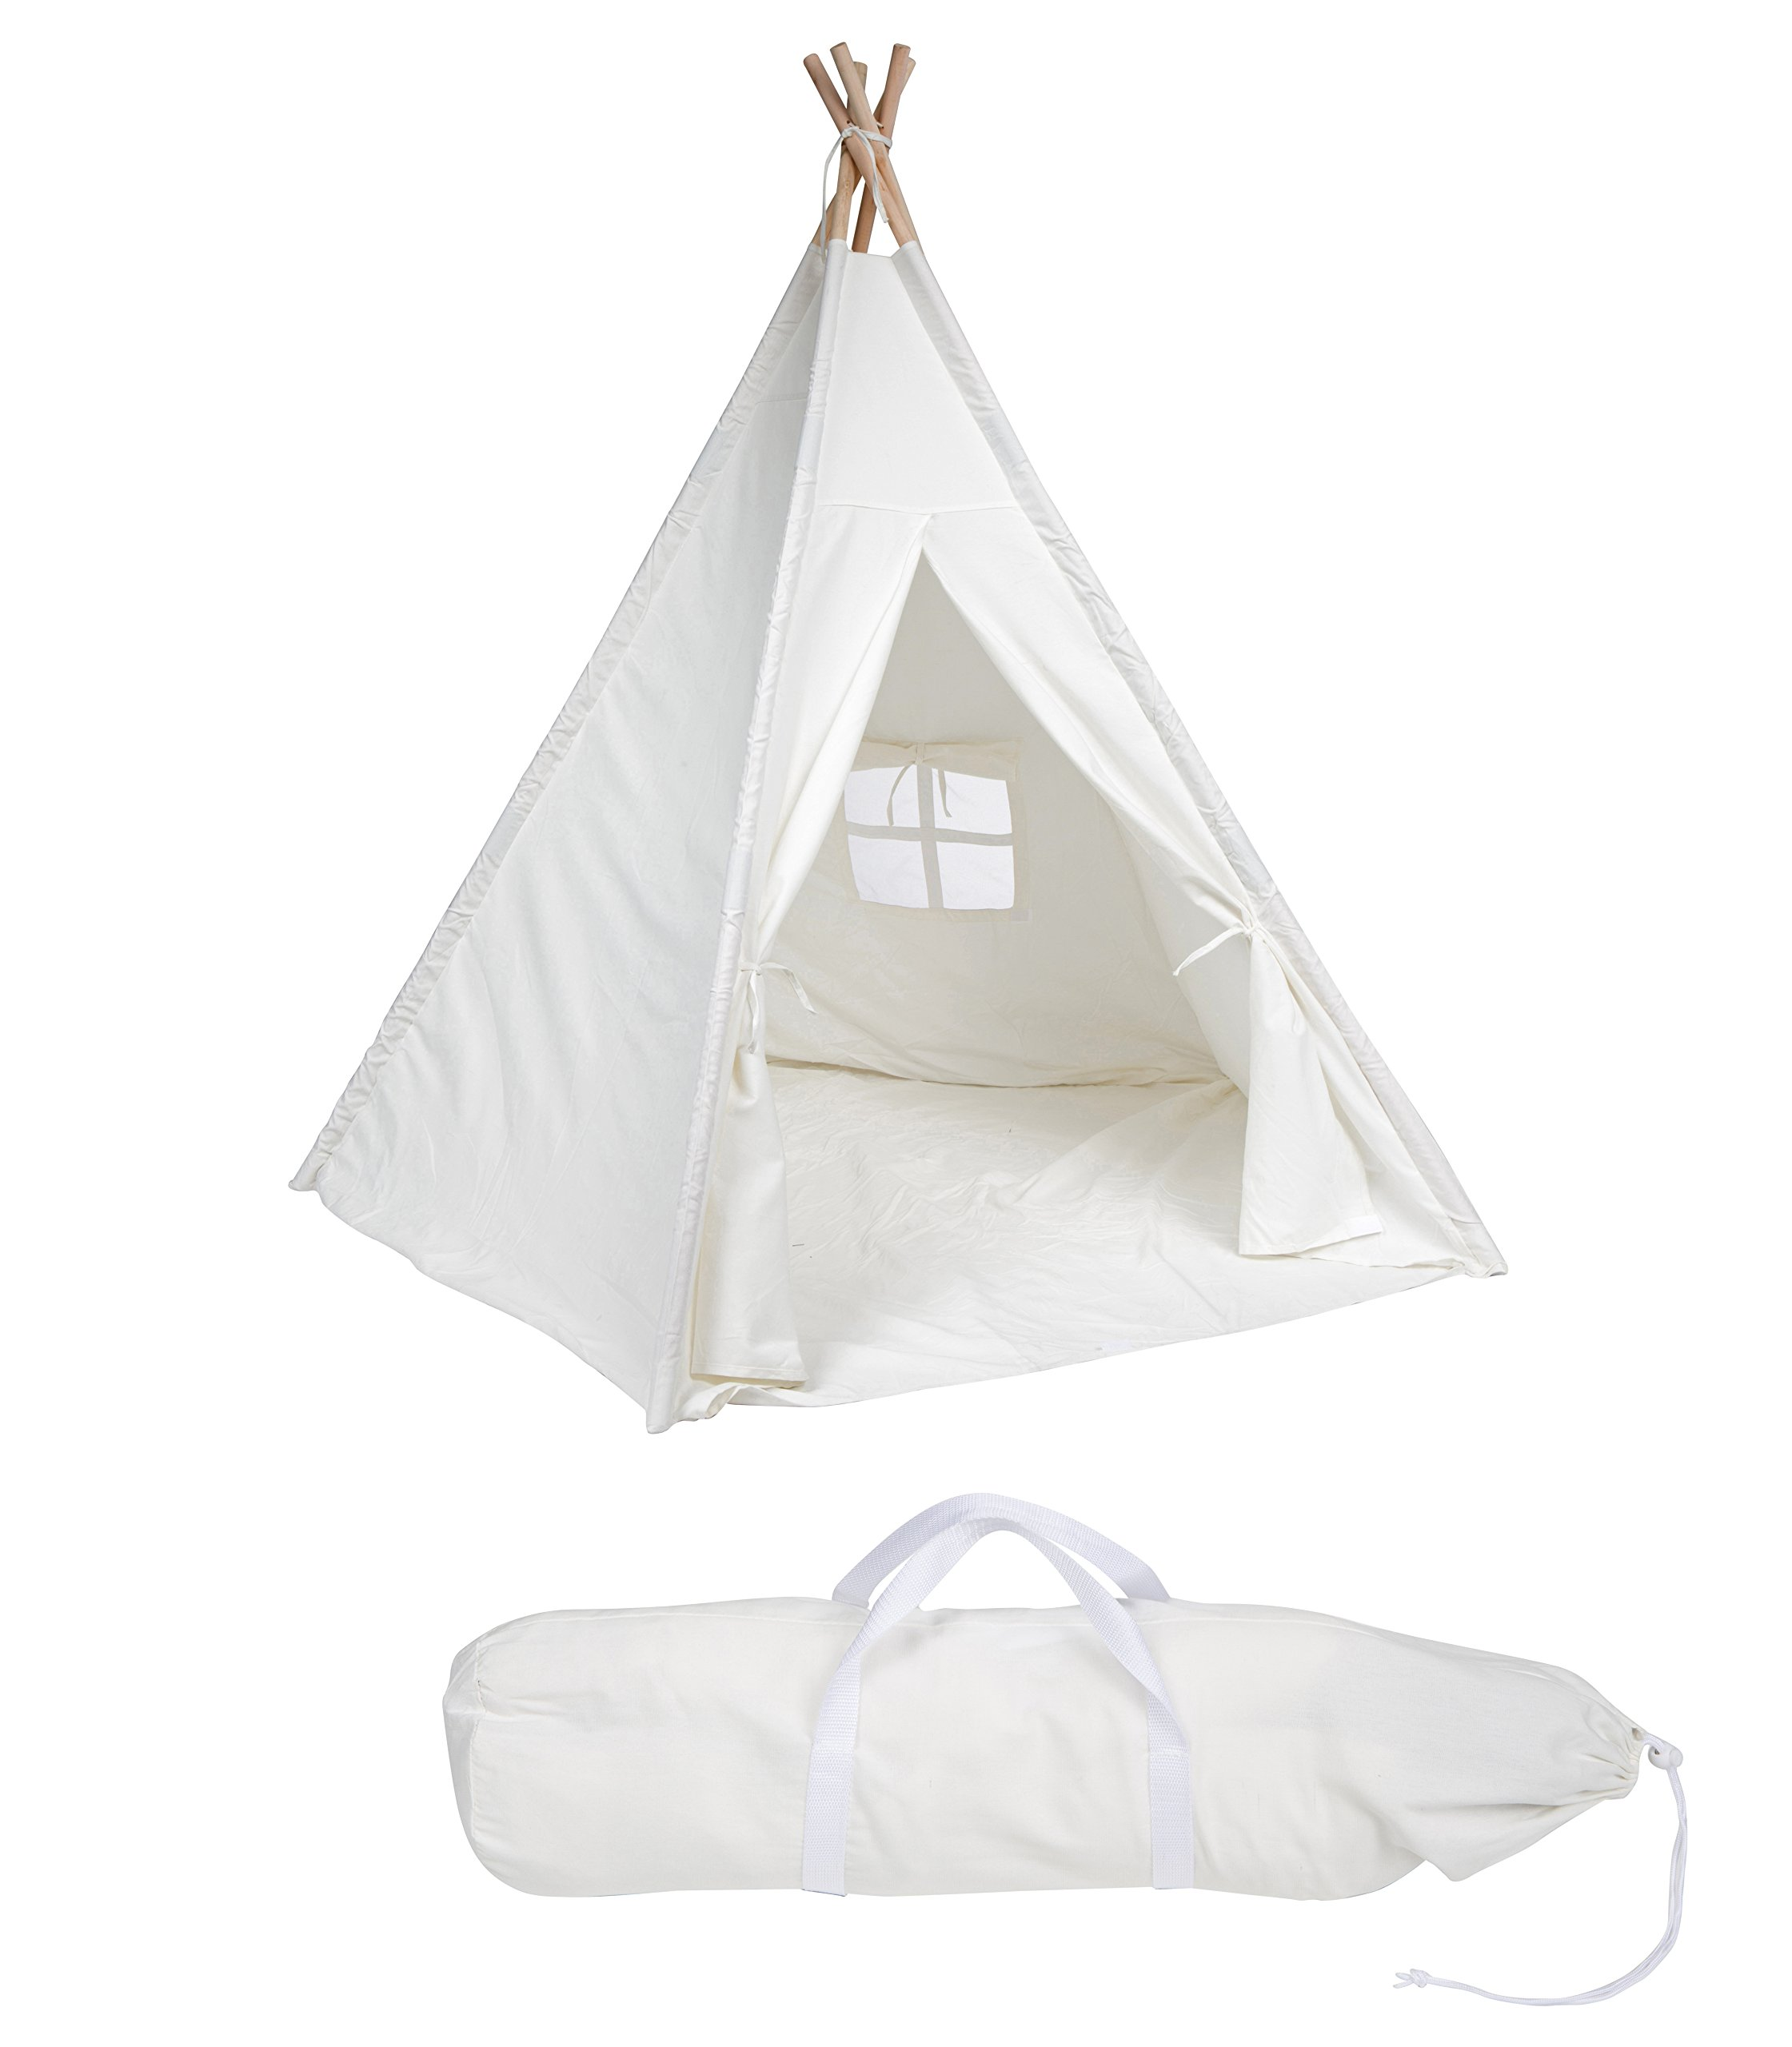 6'  Giant Teepee Play House of Pine Wood with Carry Case by Trademark Innovations (White)